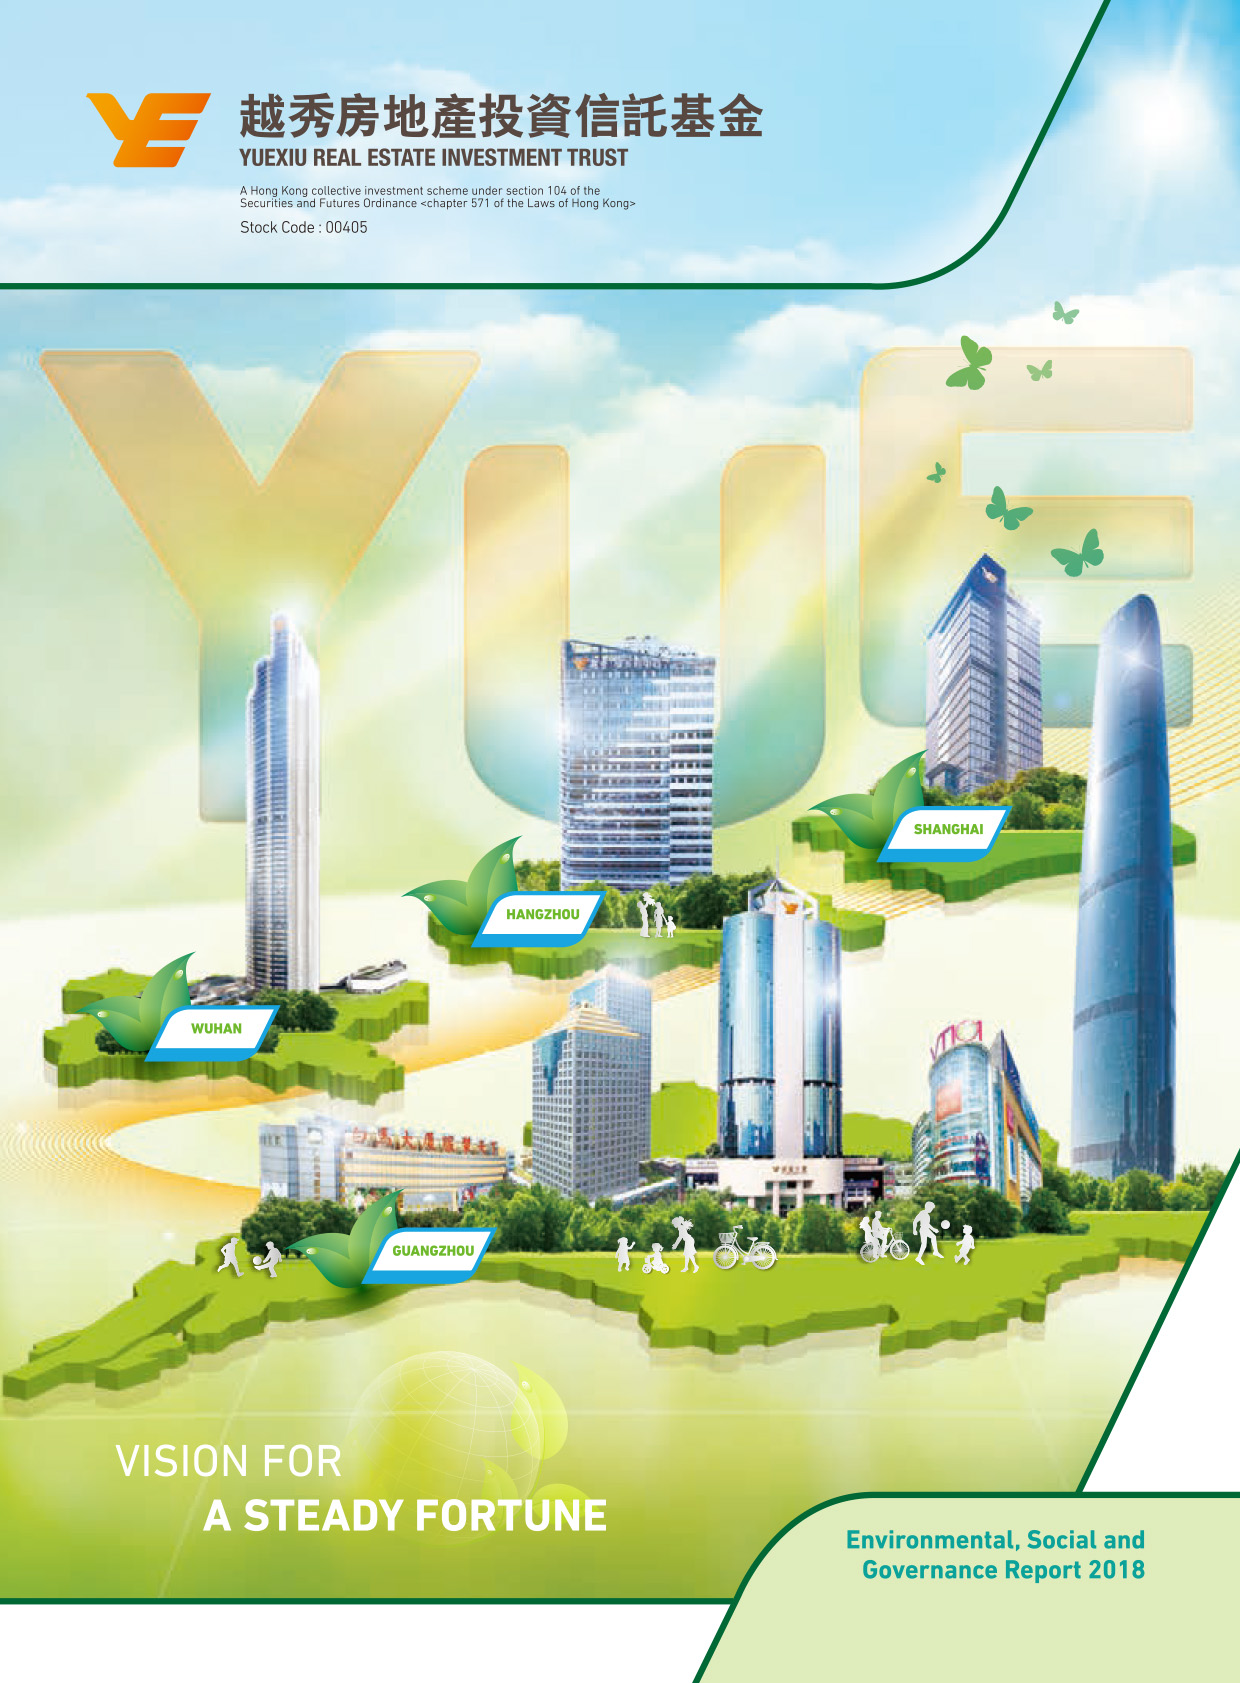 YUEXIU REAL ESTATE INVESTMENT TRUST ESG